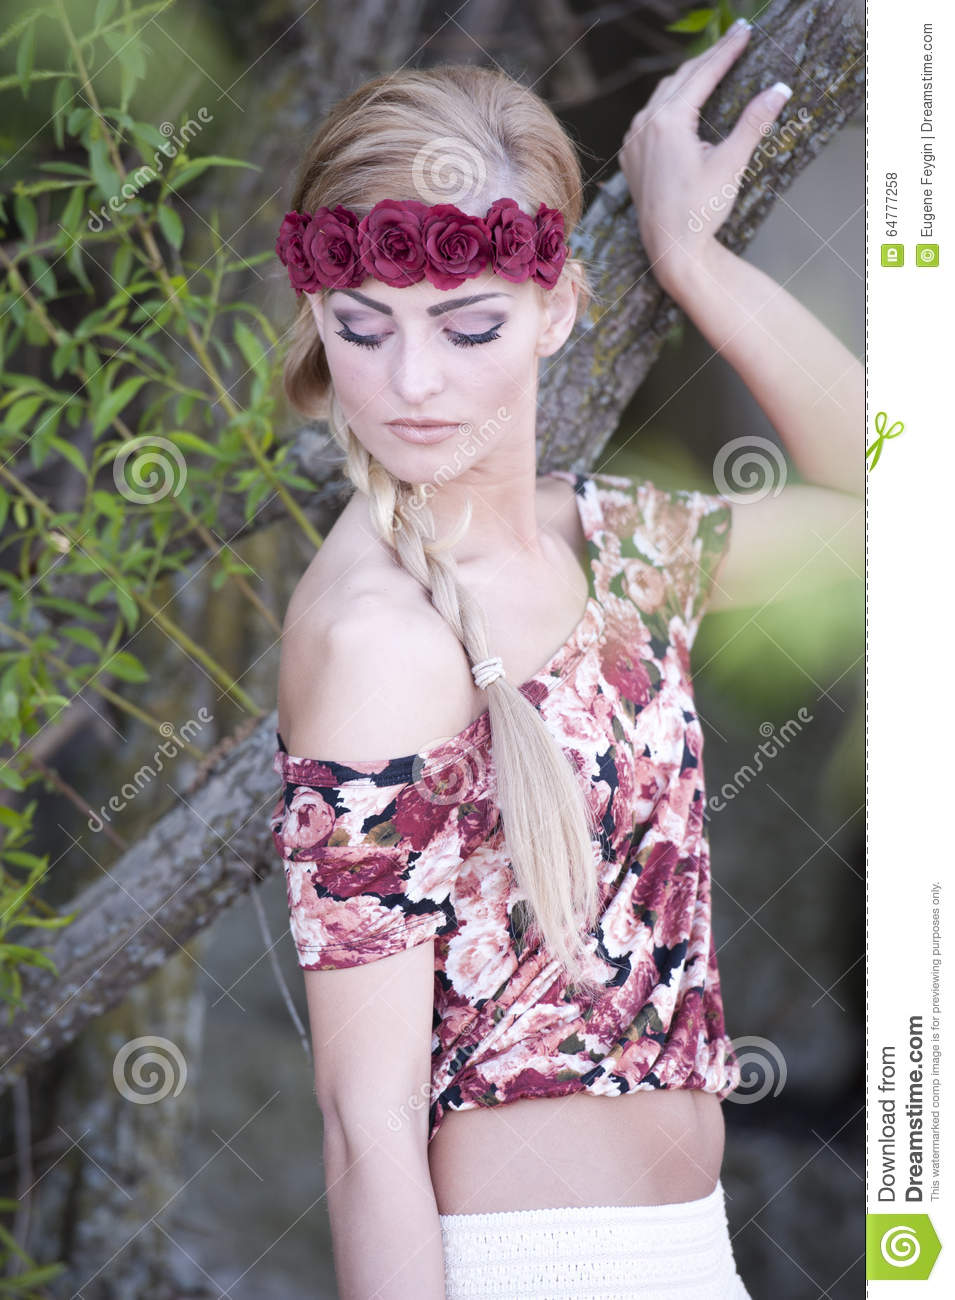 Gorgeous Blonde Wearing Flower Crown Stock Photo Image Of Outdoor